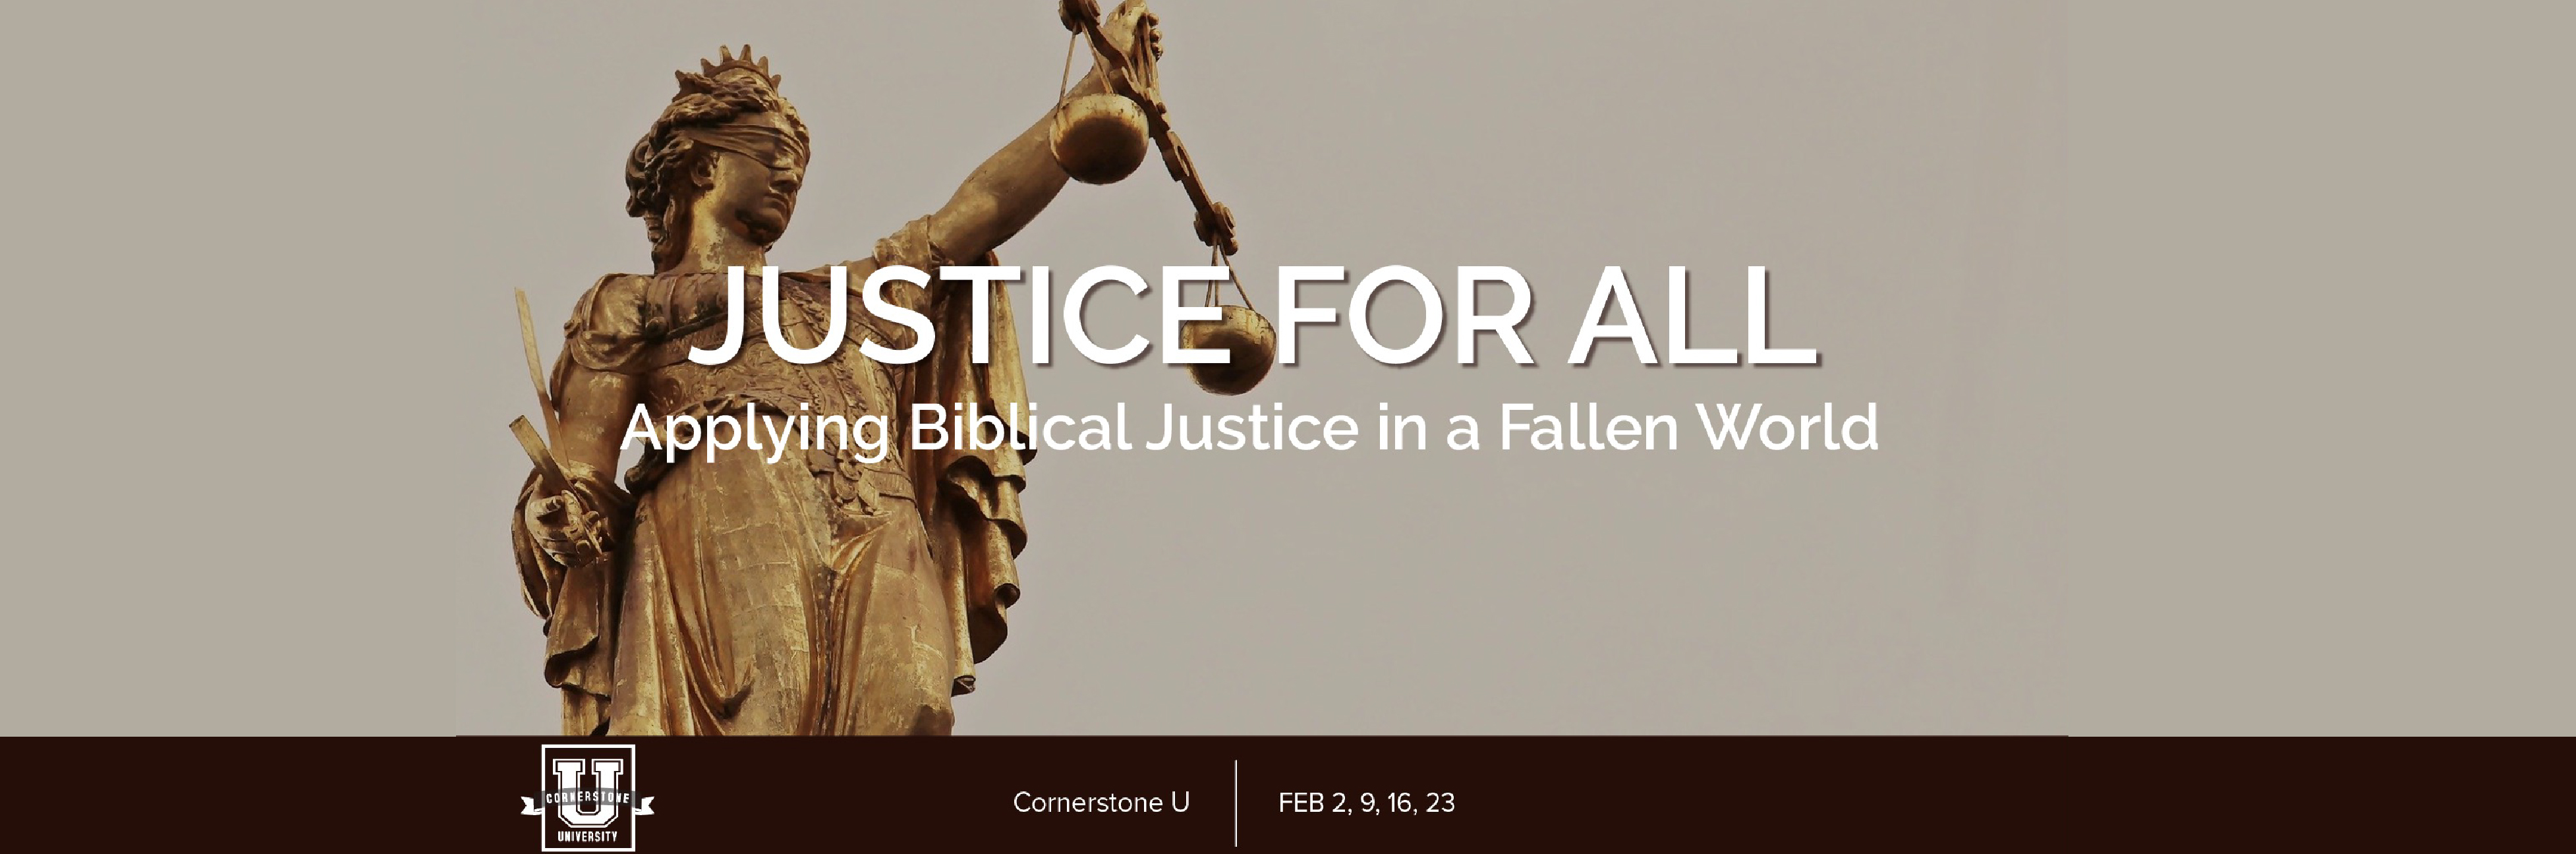 Justice for All Website-01